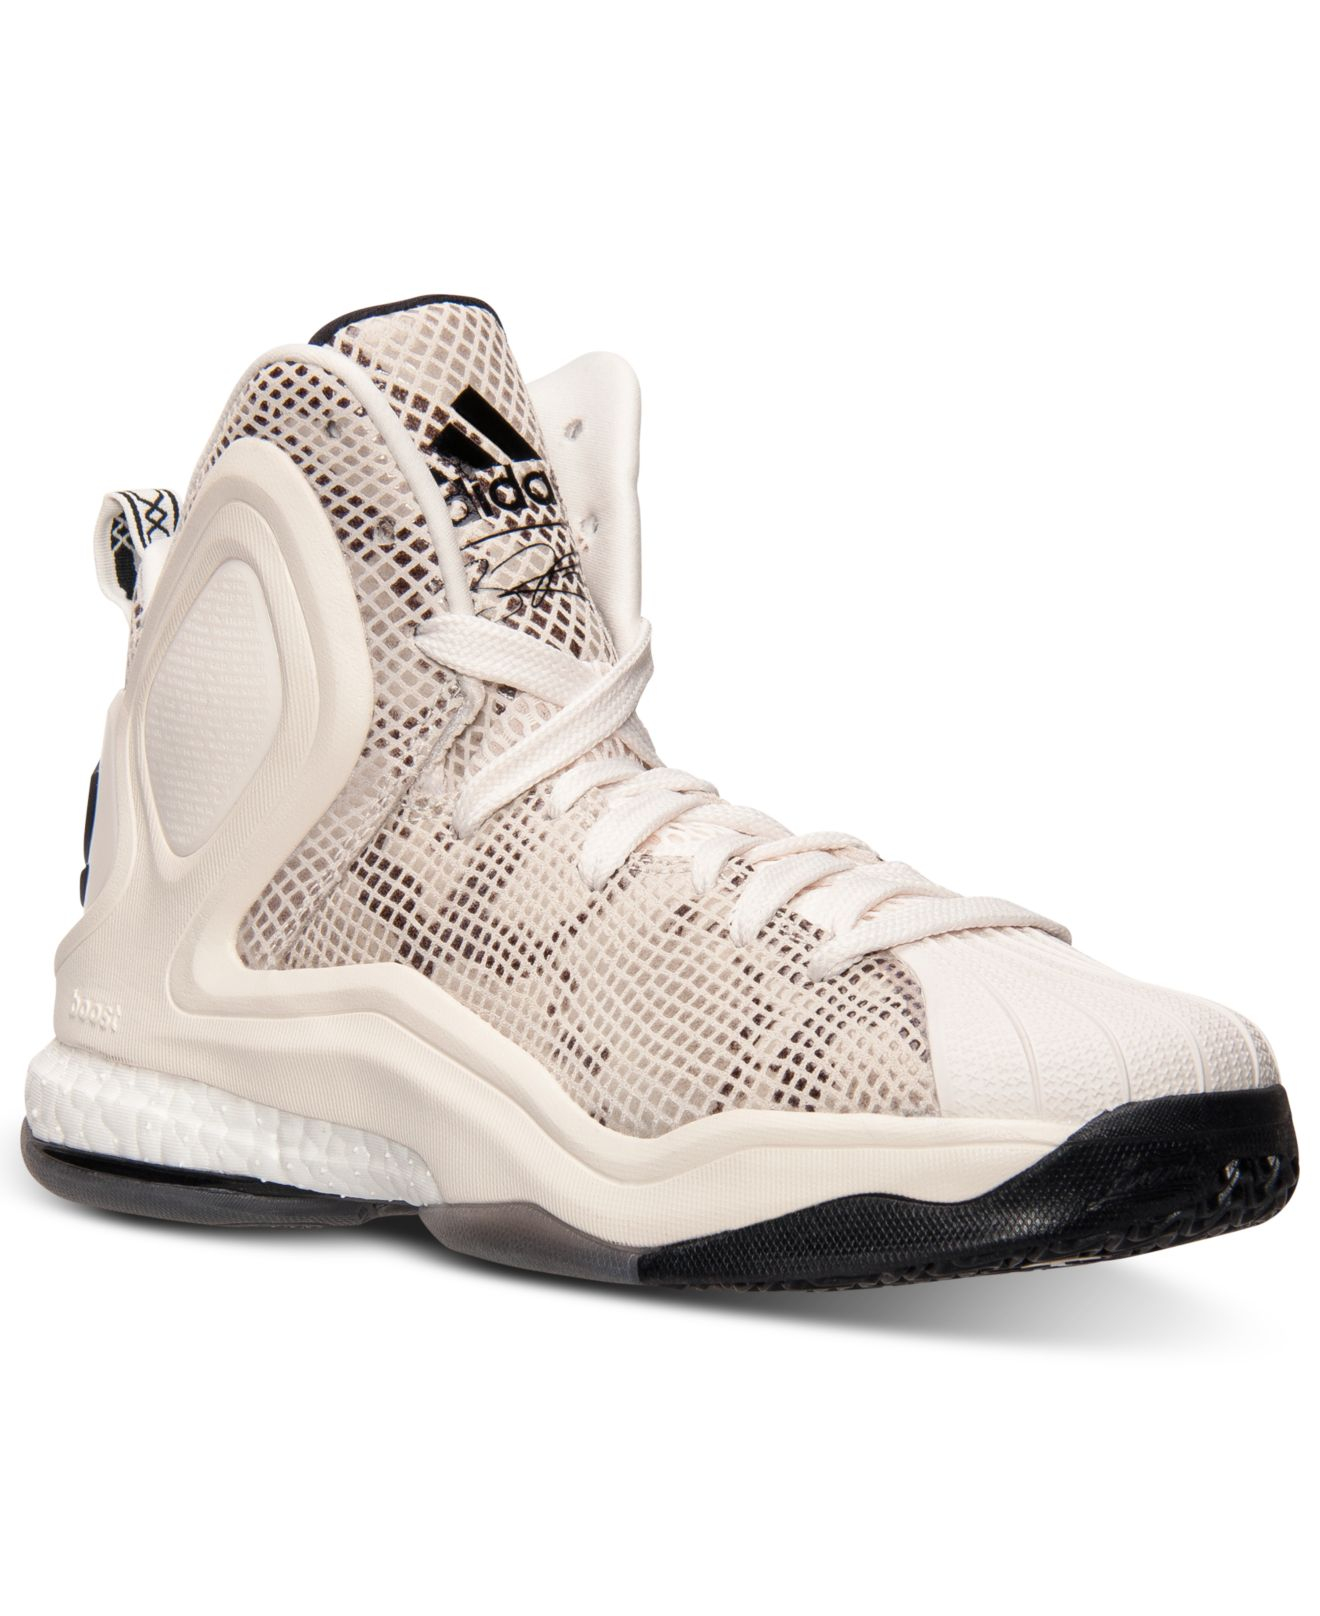 402bbd887be4 Lyst - adidas Men S D Rose 5 Boost Basketball Sneakers From Finish ...